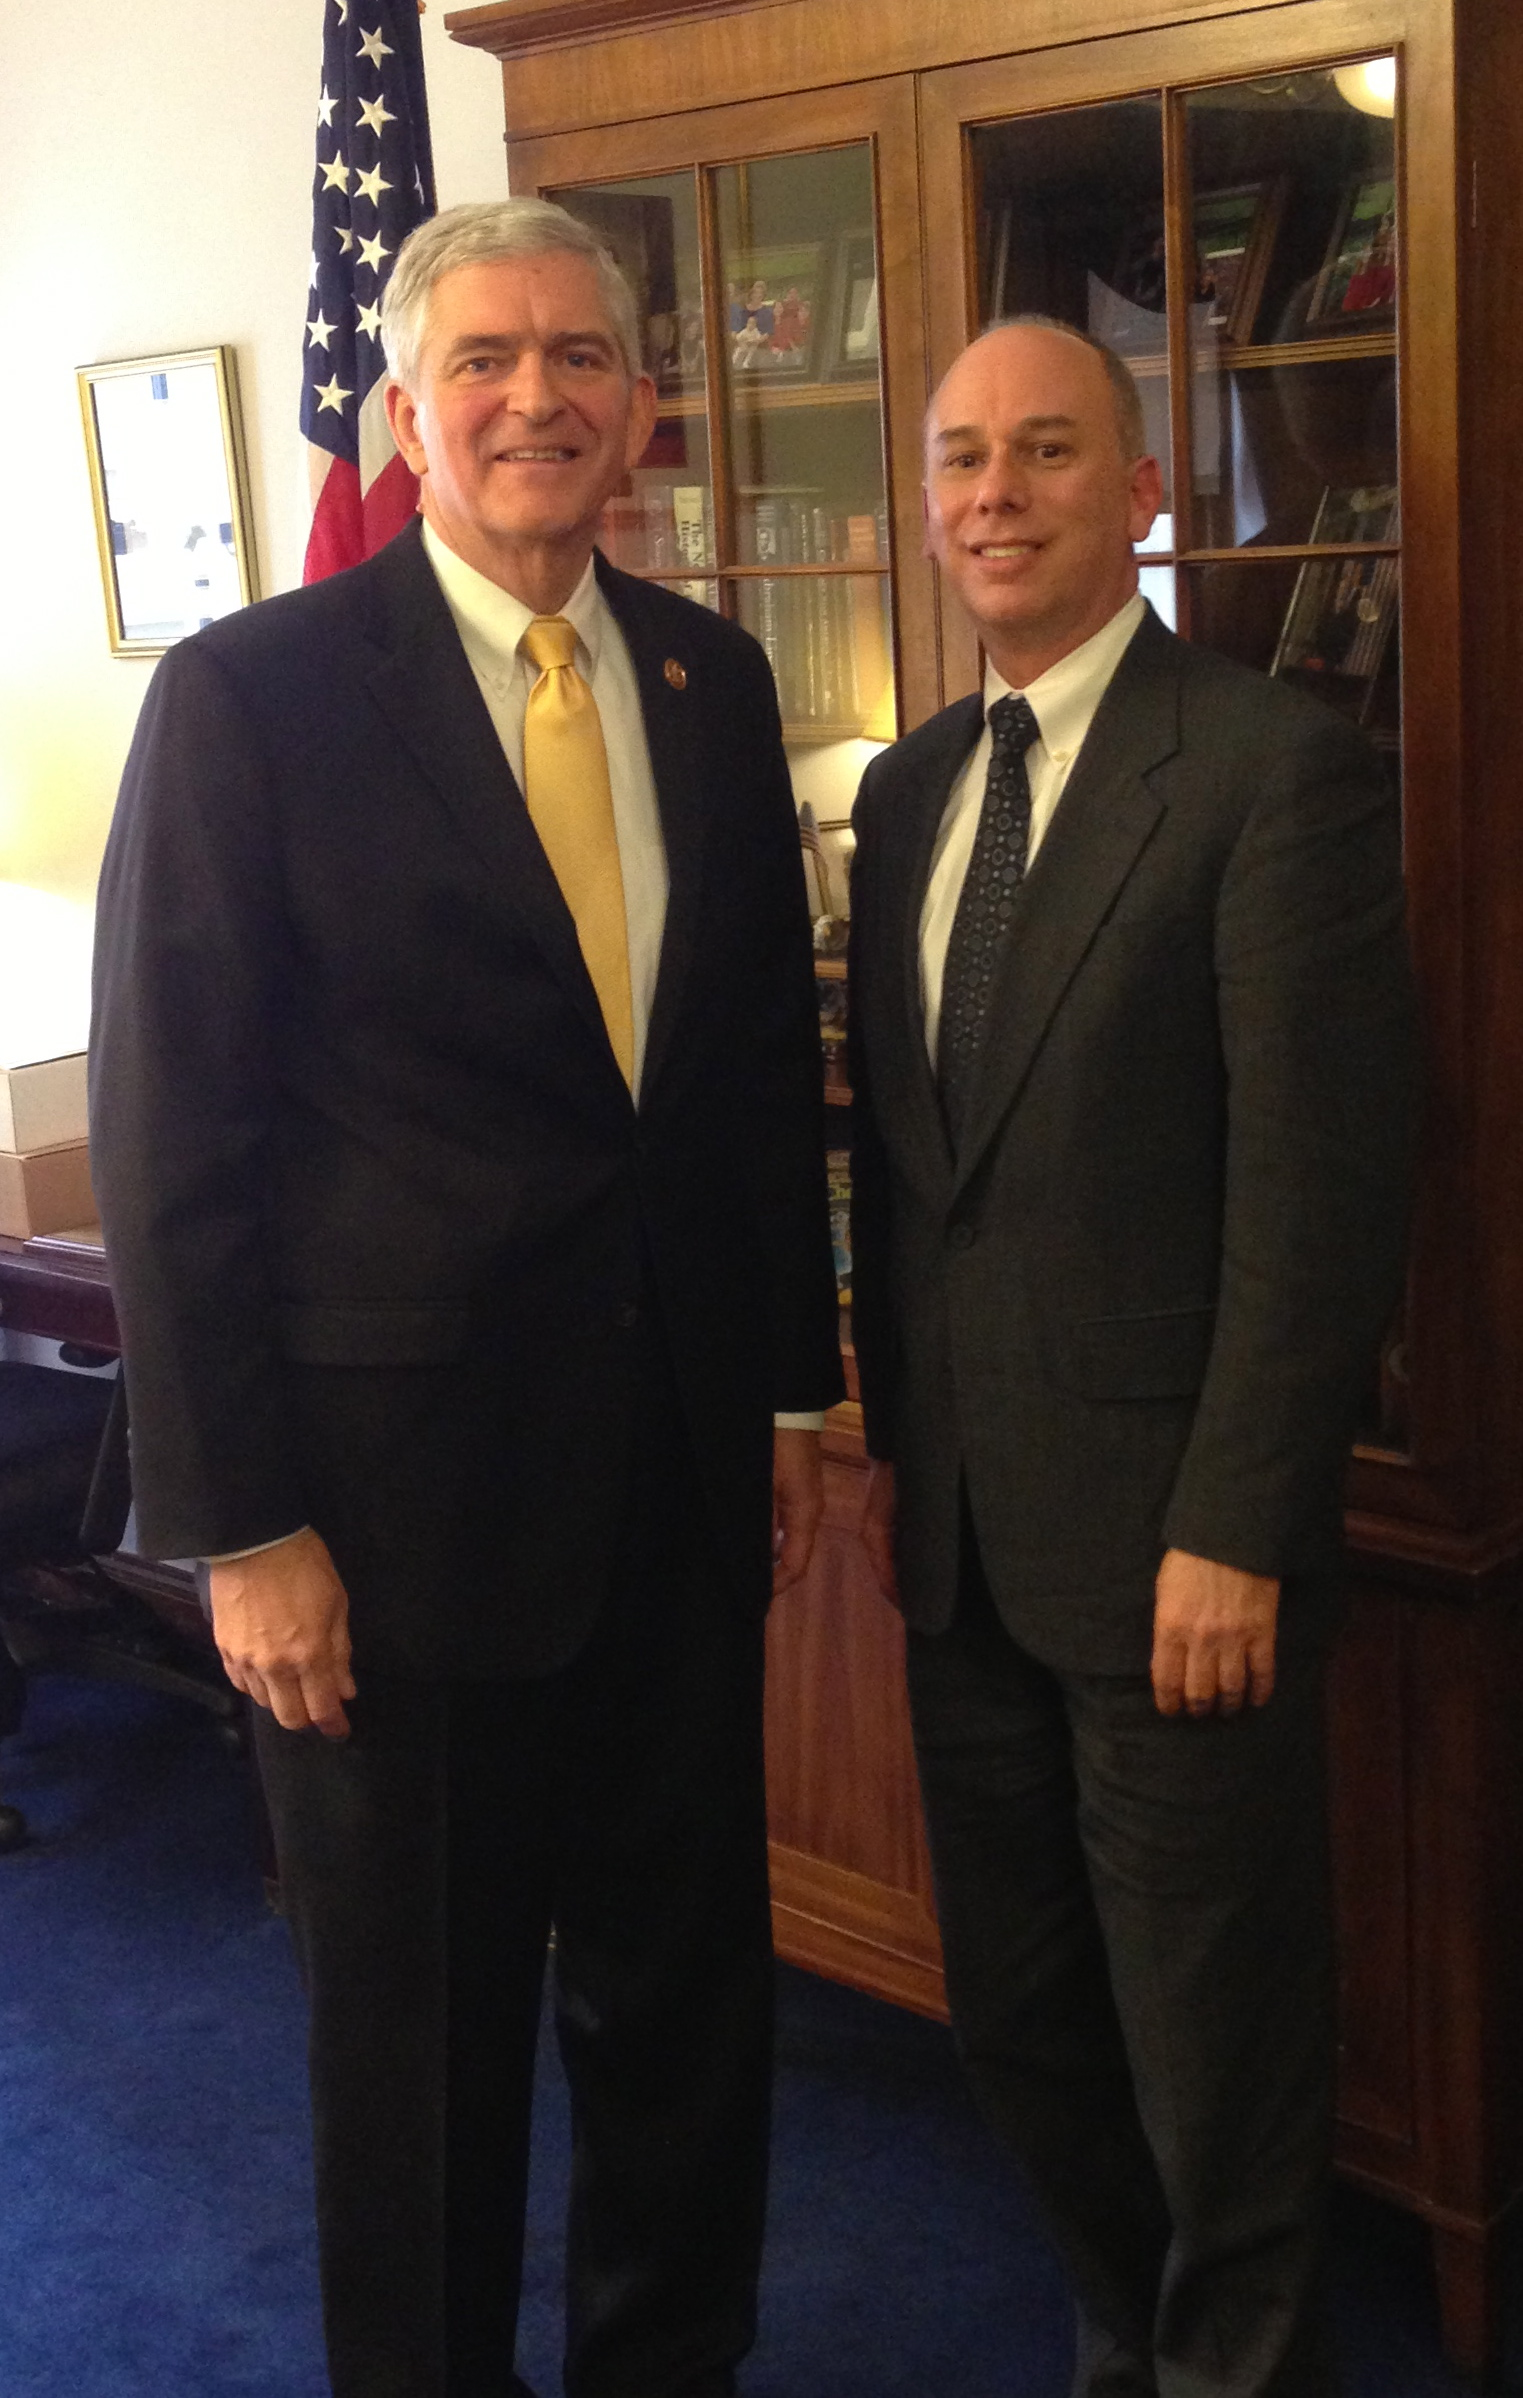 Prosthetist Orthotist Brett Saunders meets with Rep. Daniel Webster as pictured on the website of Saunders Prosthetics and Orthotics Group in the Villages of Lady Lake